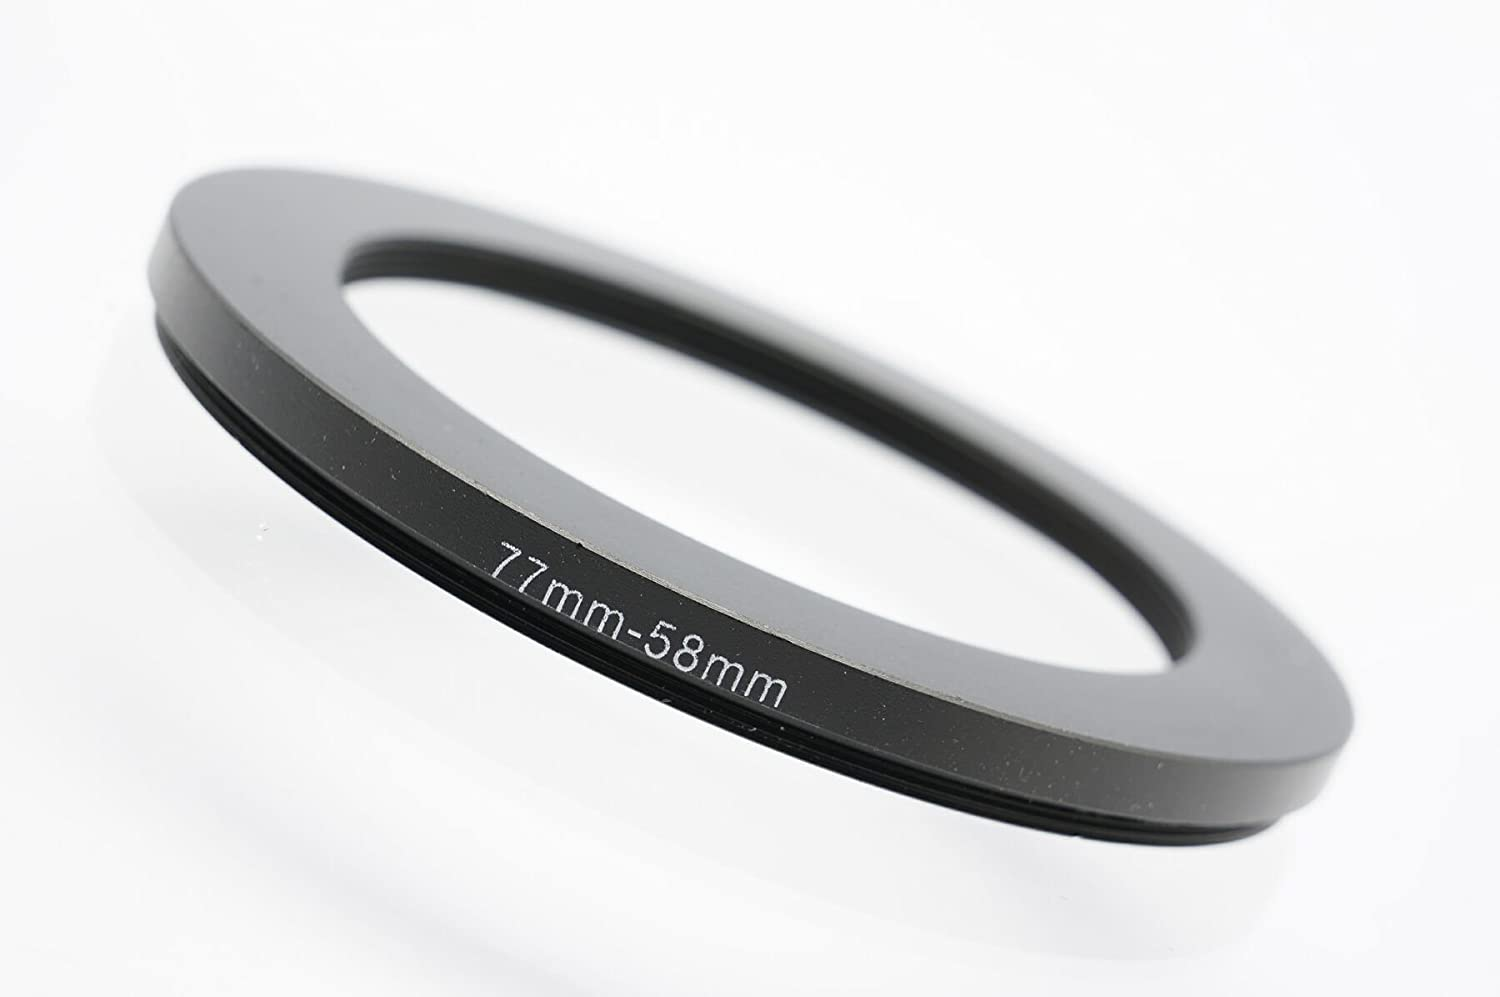 Gadget Place 77mm to 58mm Adapter Ring